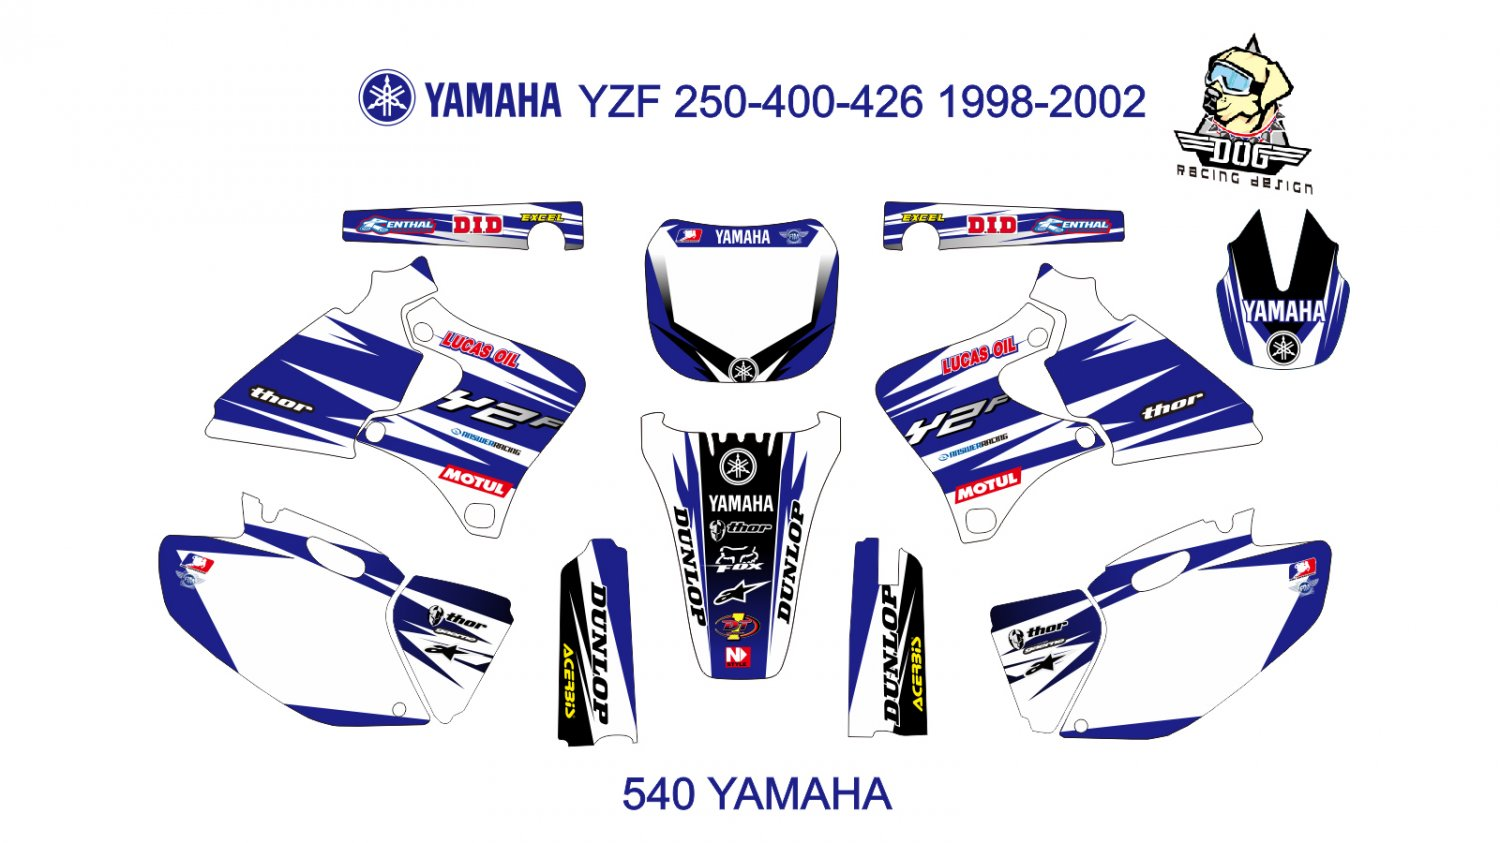 YAMAHA YZF 250-400-426 1998-2002 GRAPHIC DECAL KIT CODE.540